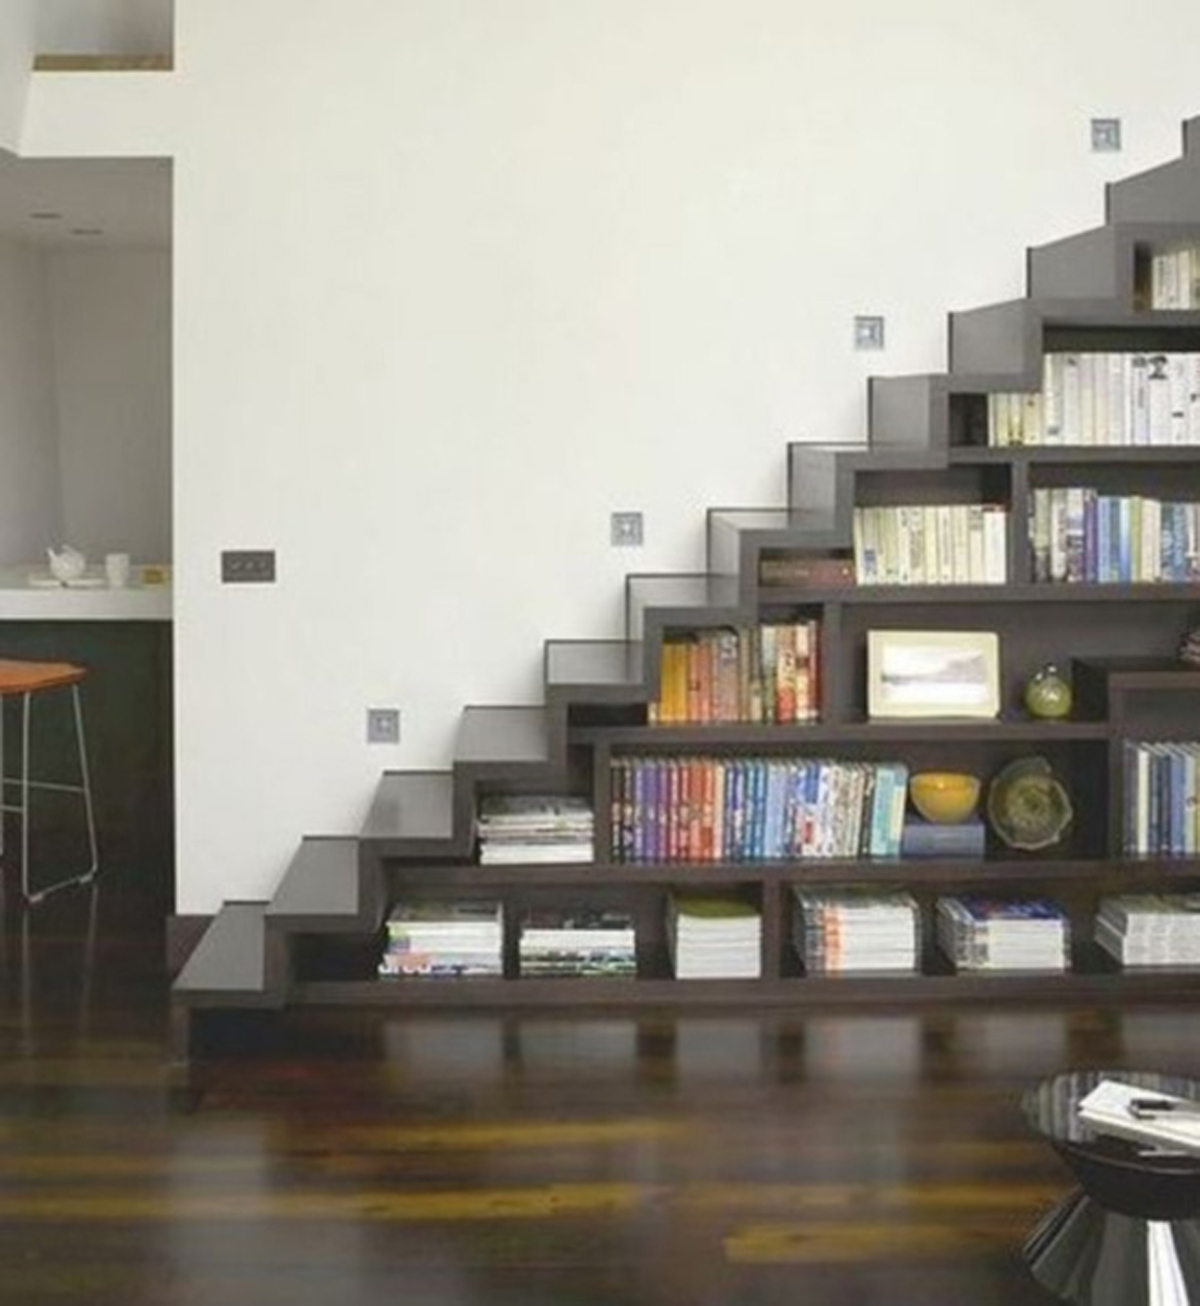 Bookcase Design Ideas 12 Inspiration Gallery From Ladder Bookshelf Design Ideas